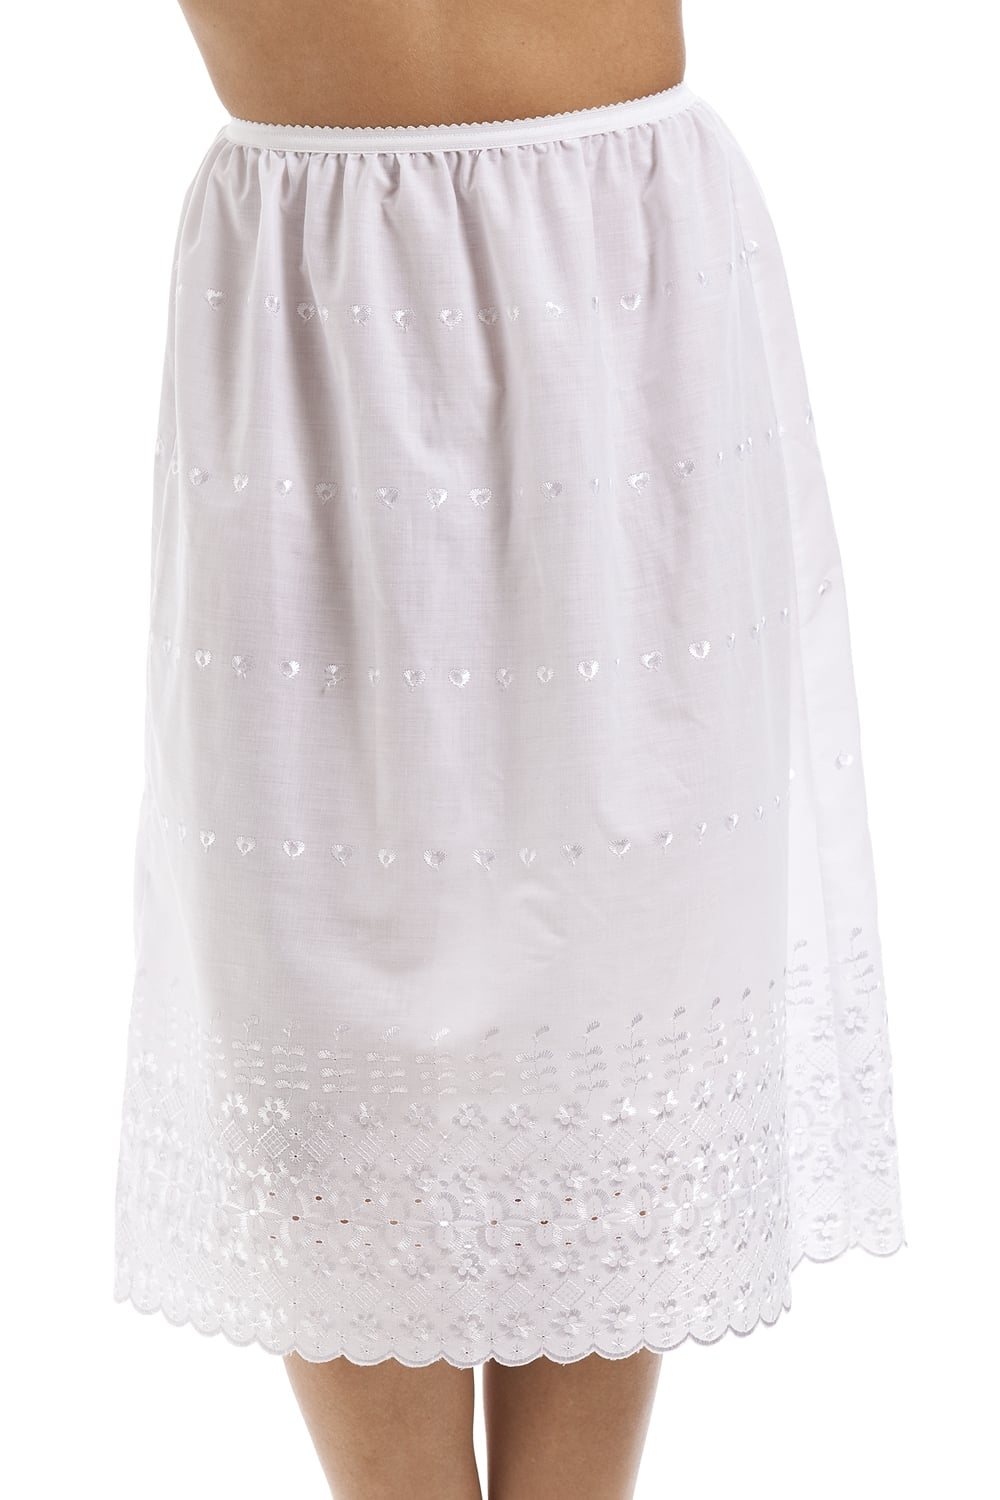 GMI G5273 White - Lace Embroidered Skirt Suit For Church